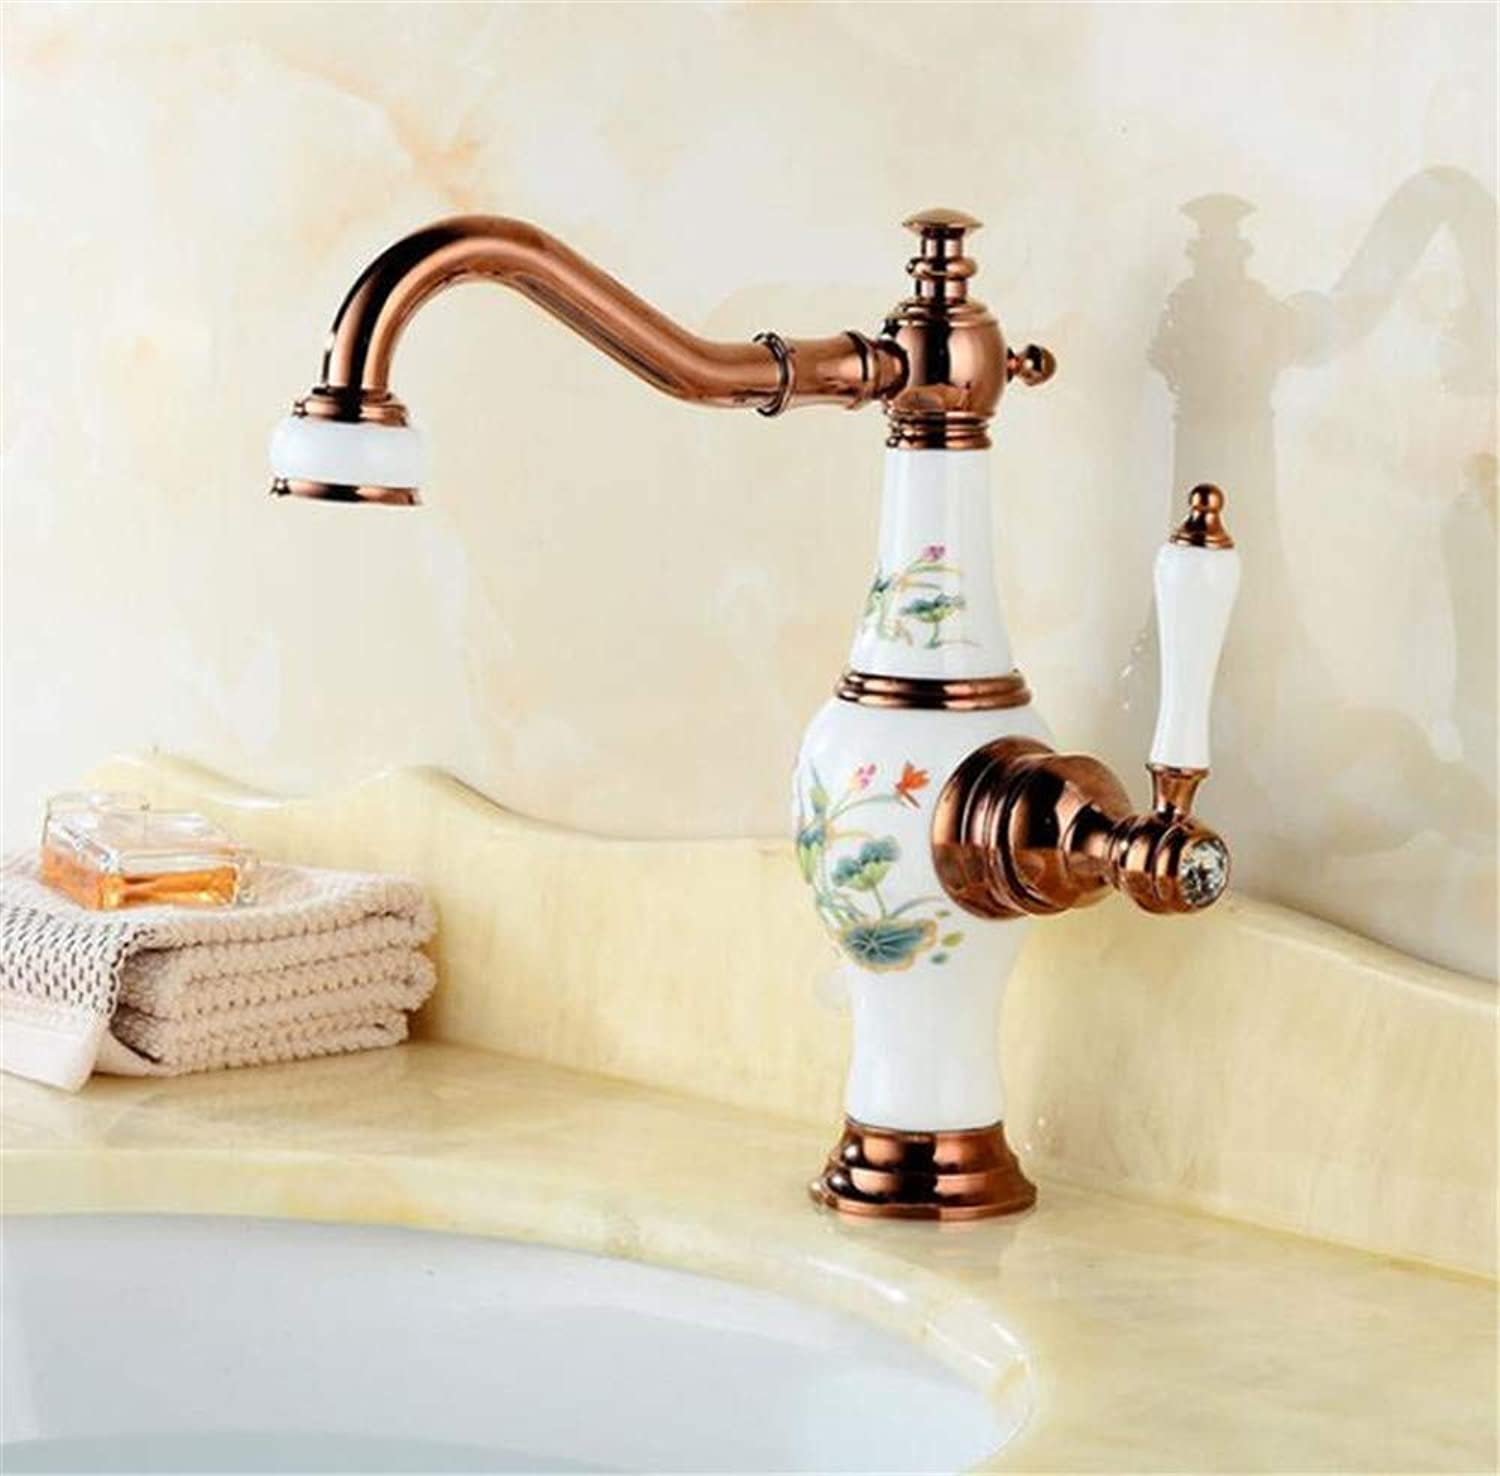 FuweiEncore Basin Faucet pink gold and Porcelain Brass Basin Sink Faucet Deck Mounted Bathroom Water Tap Hot and Cold Mixer Tap Basin Faucet (color   -, Size   -)